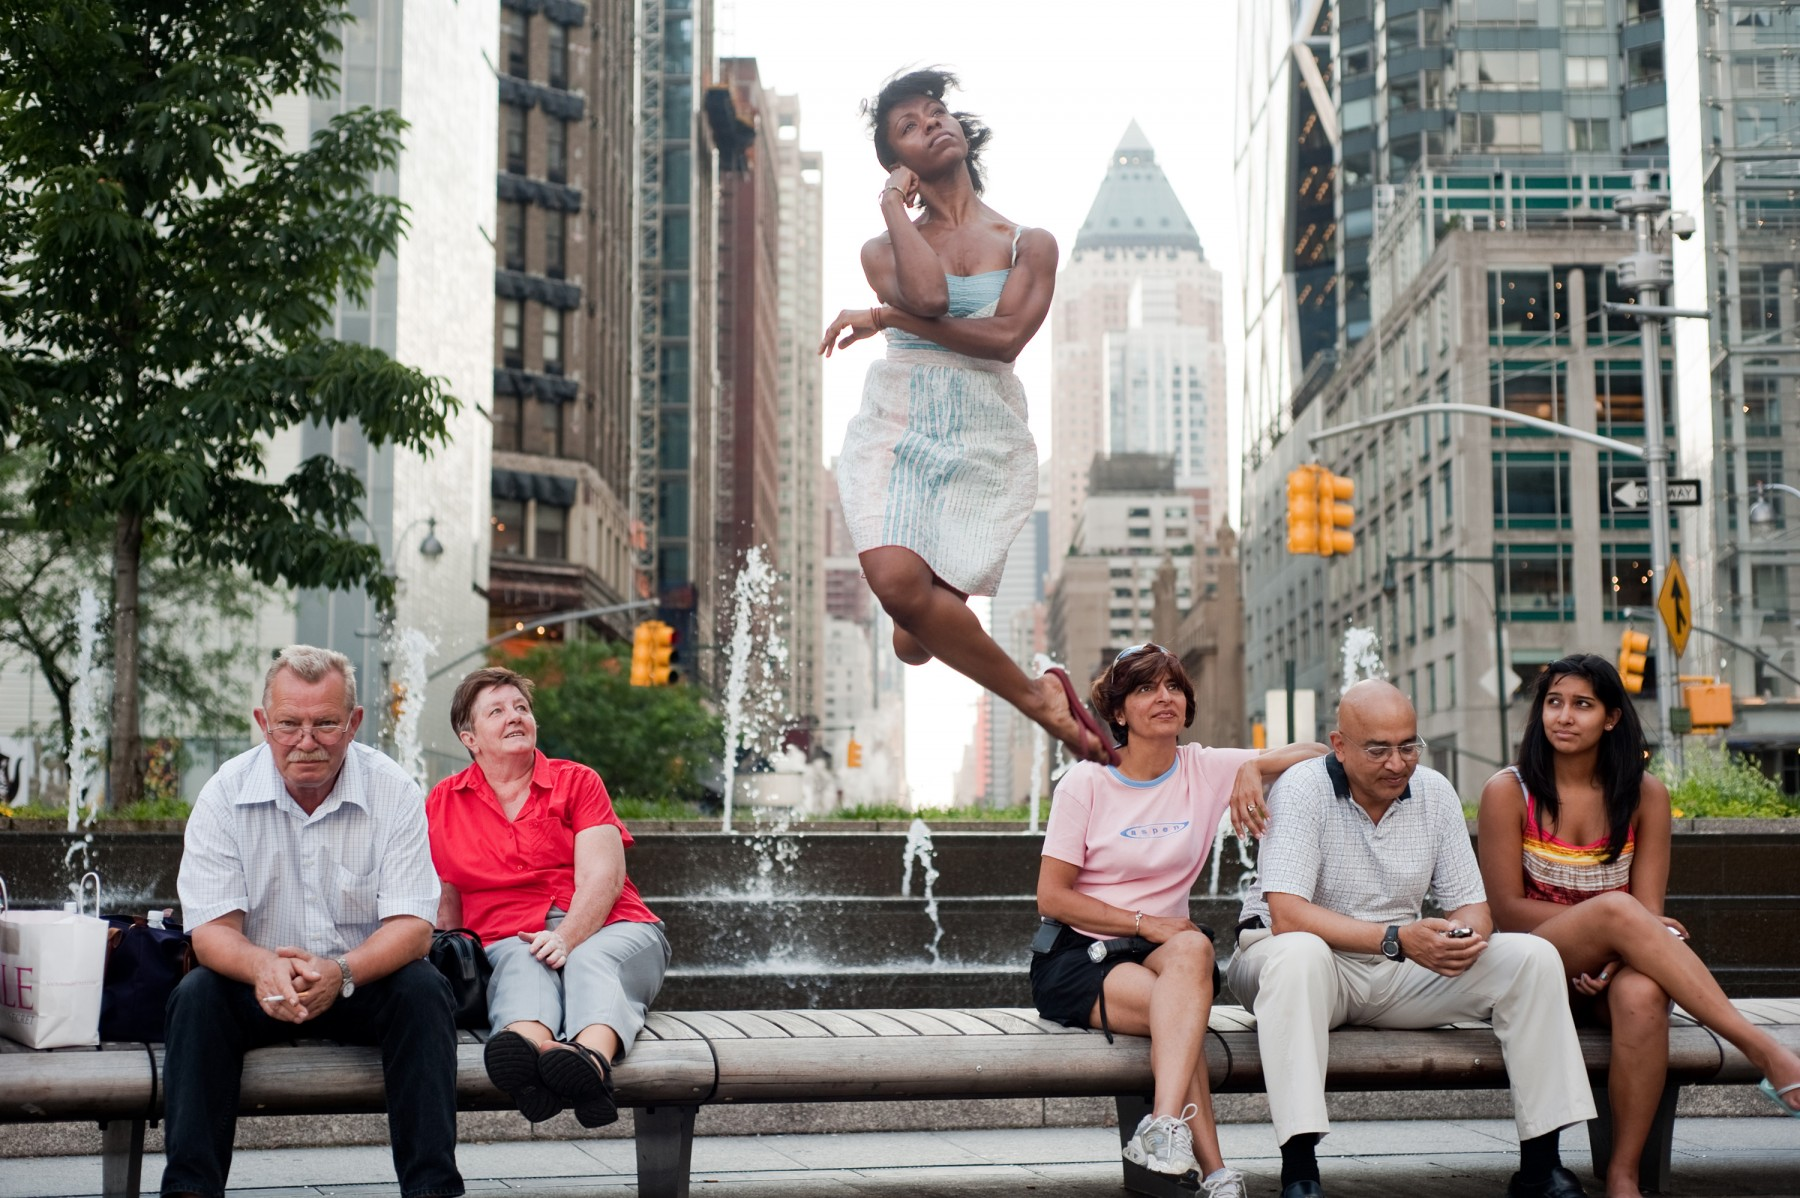 Dancers-Among-Us-in-Columbus-Circle-Michelle-Fleet